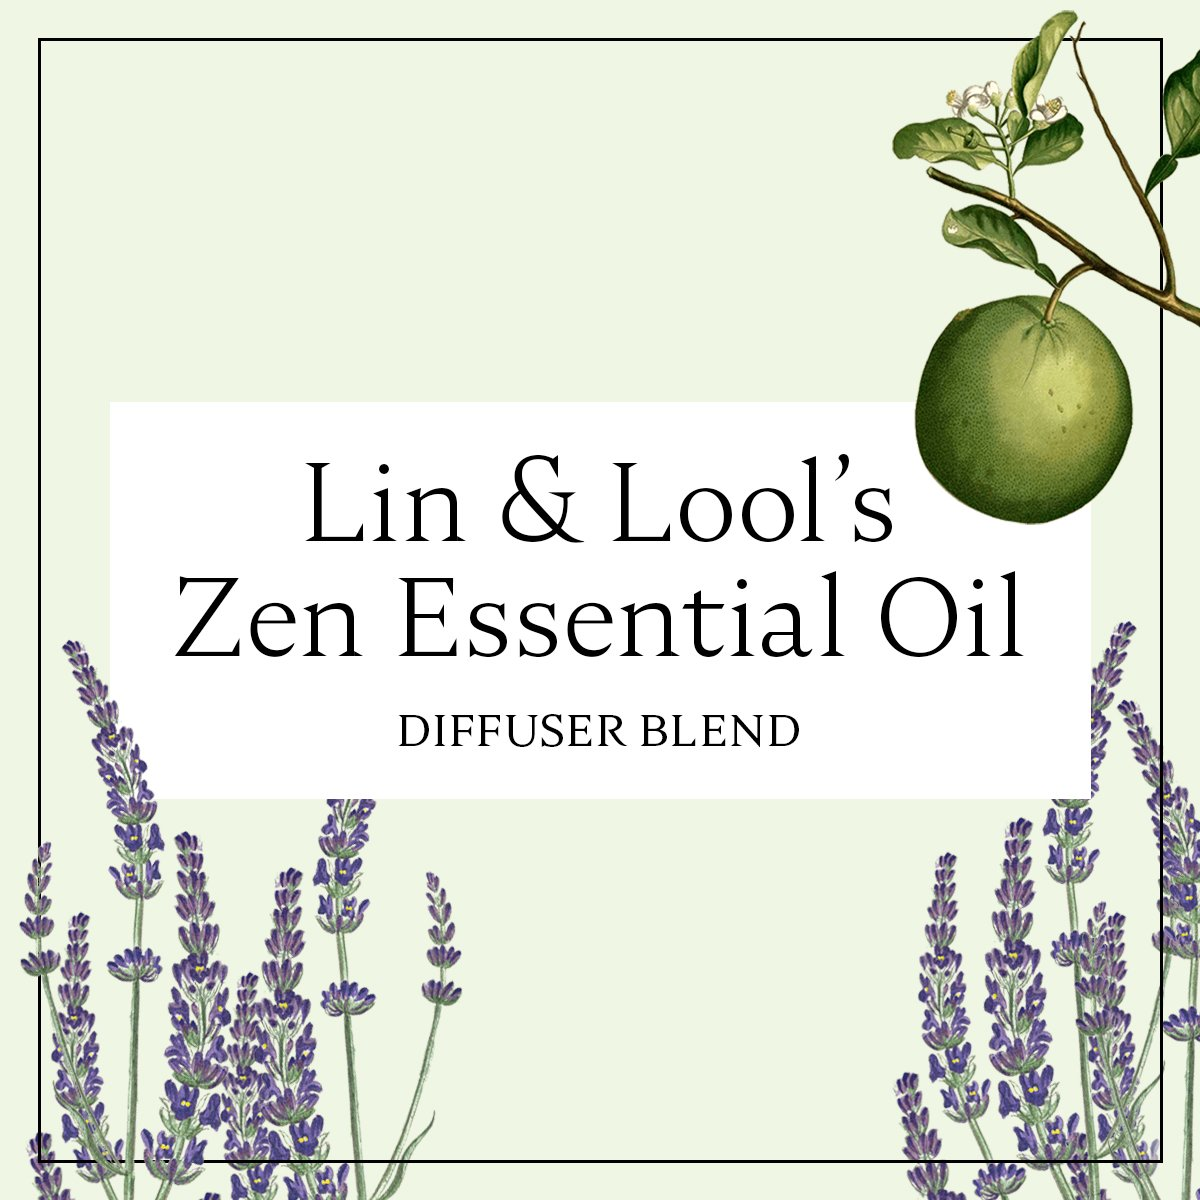 Diffuser Blend: Essential Oils for Zen